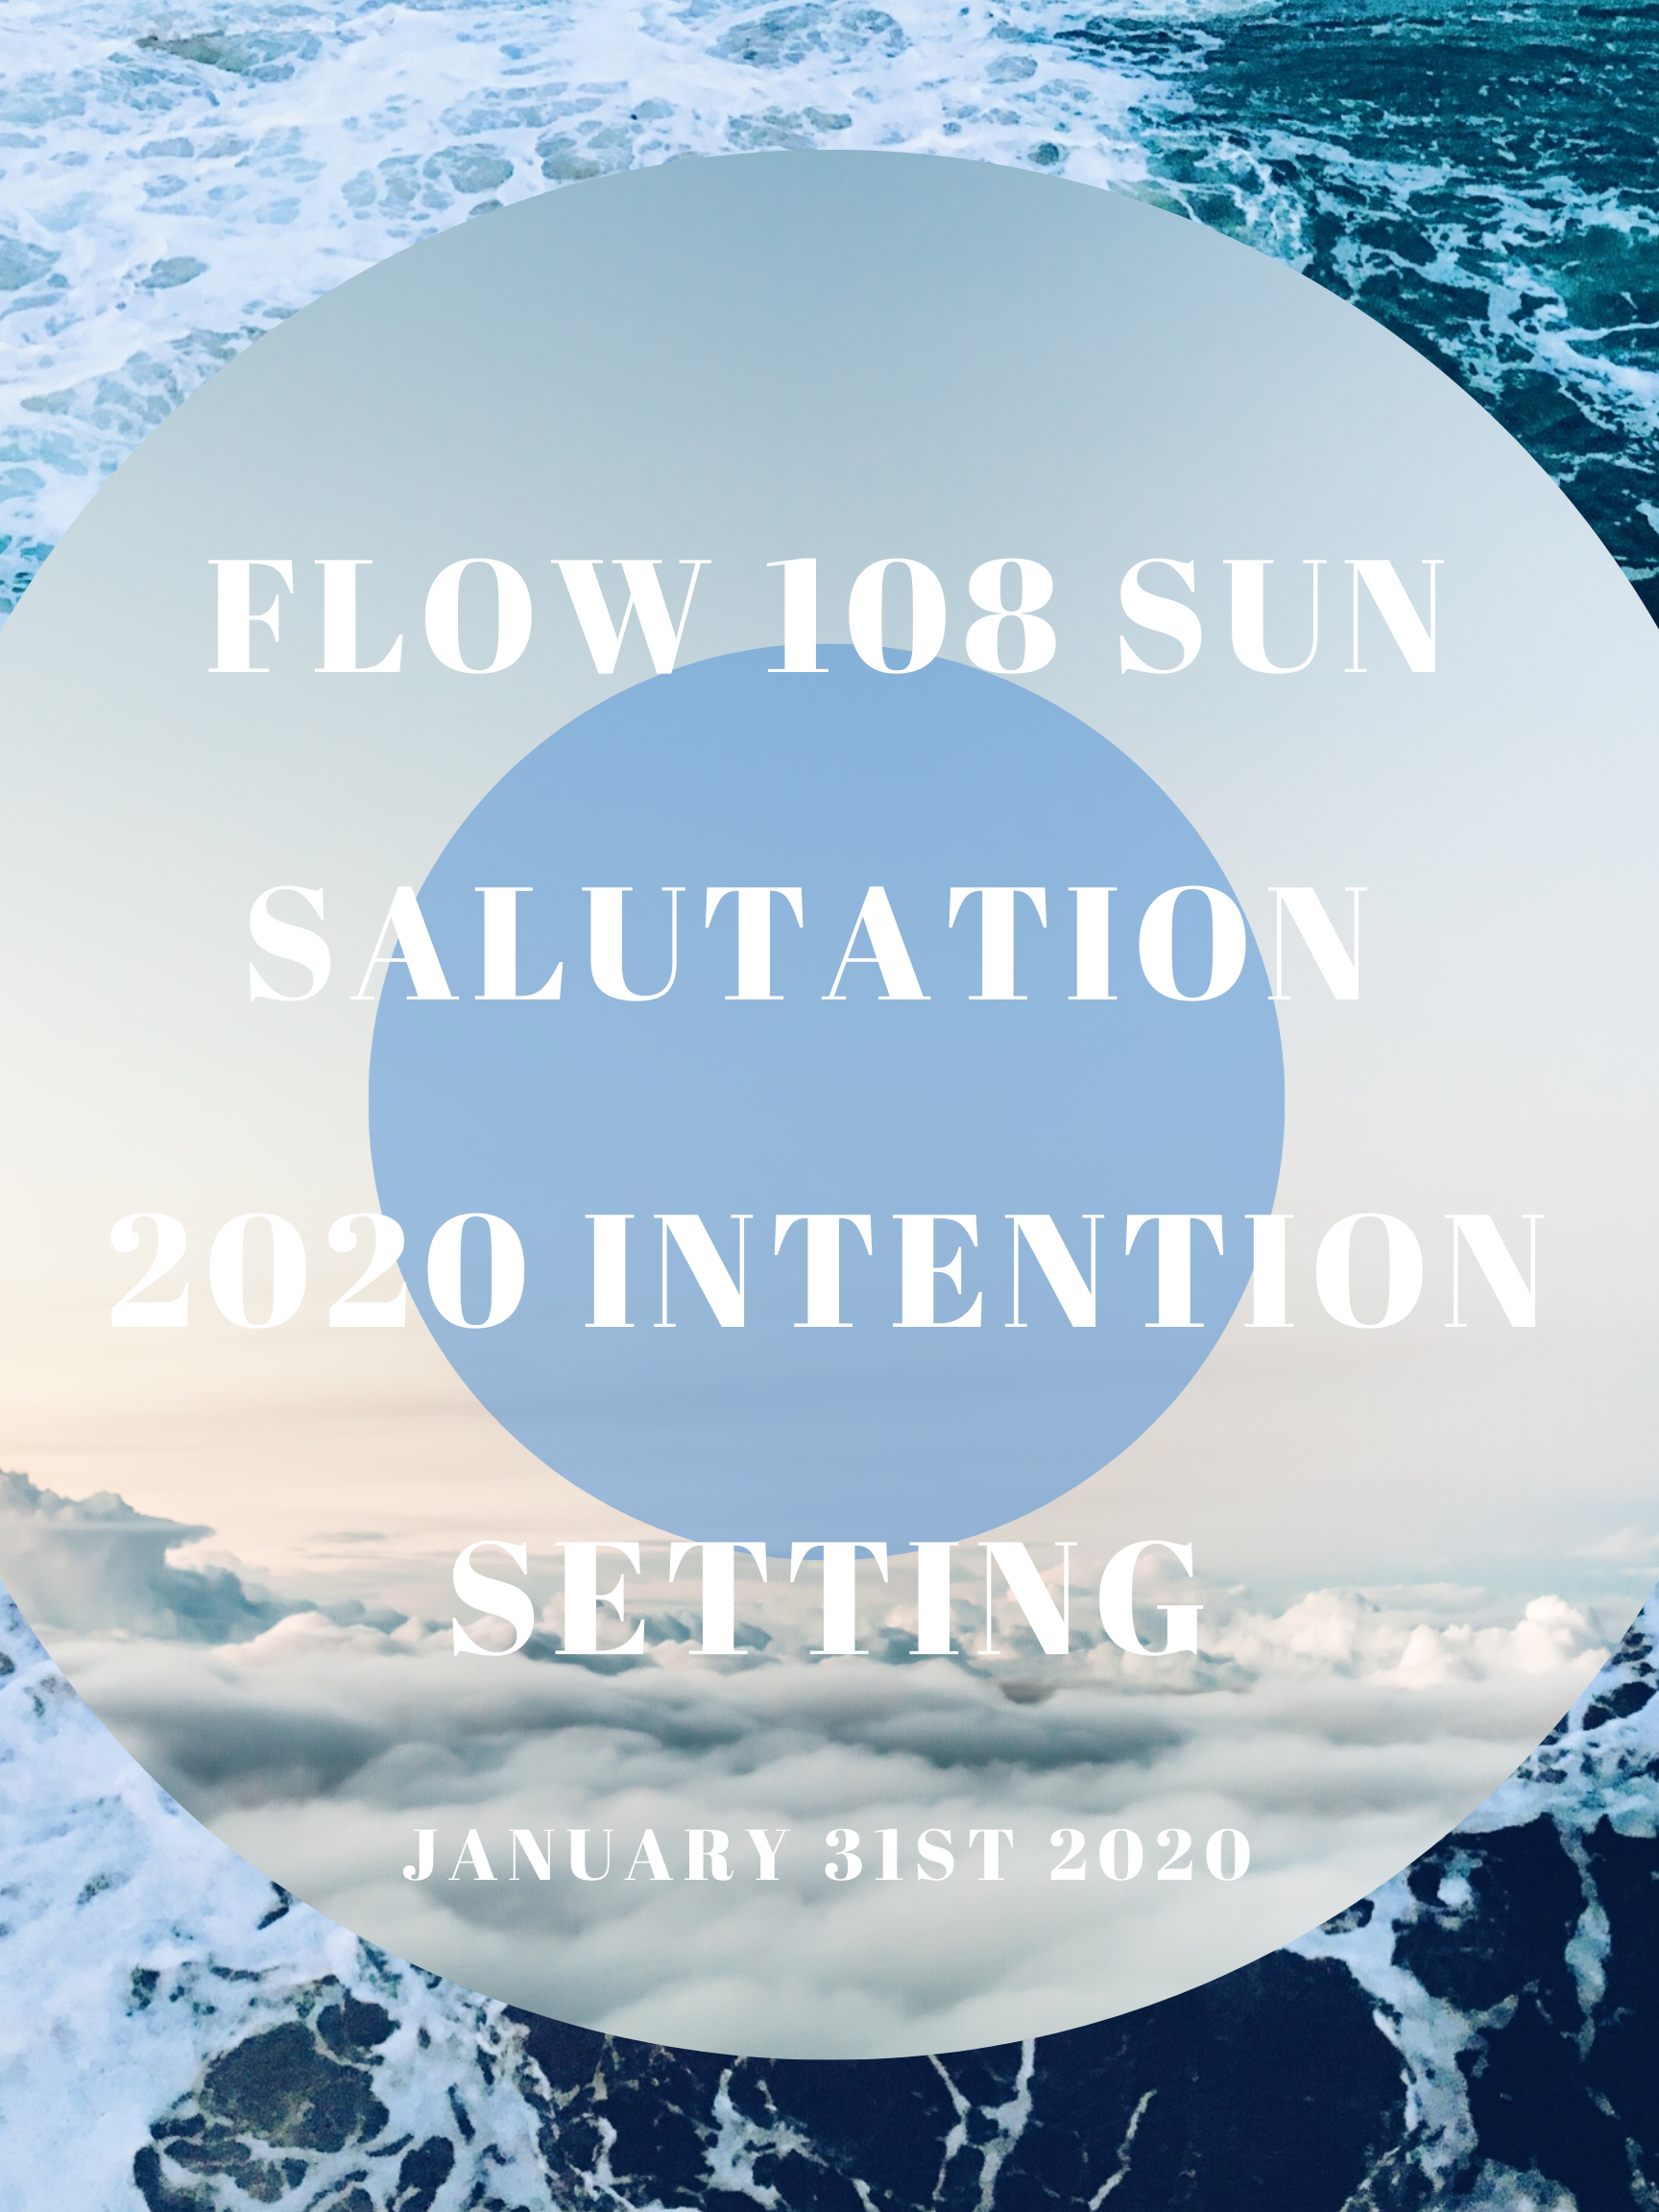 108 Sun Salutation to start the new year with intention